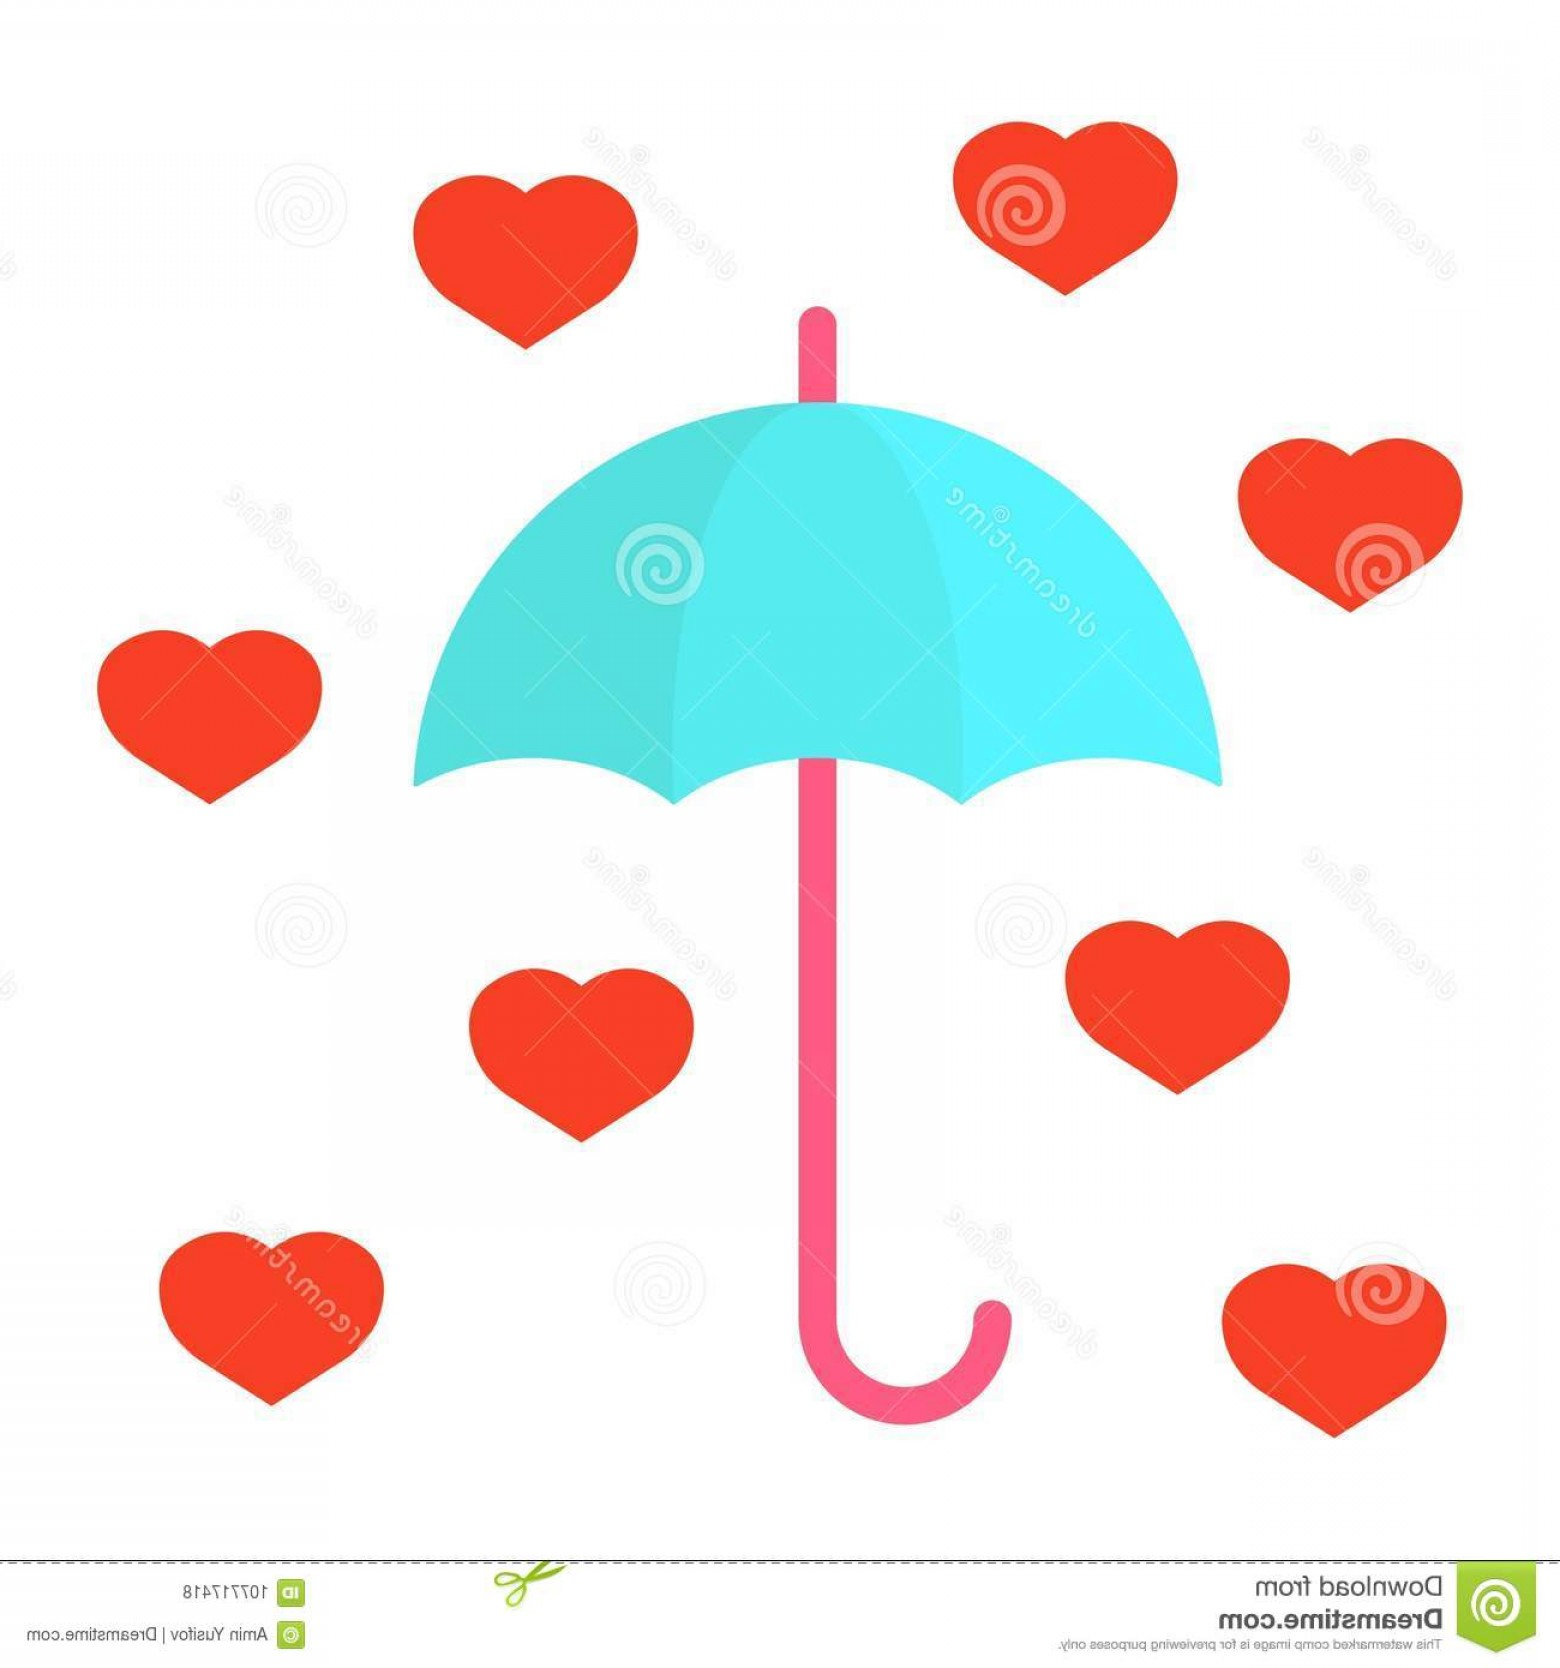 Solid Heart Vector Drawing: Love Umbrella Flat Icon Valentines Day Romantic Hearts Sign Vector Graphics Colorful Solid Pattern White Background Eps Image